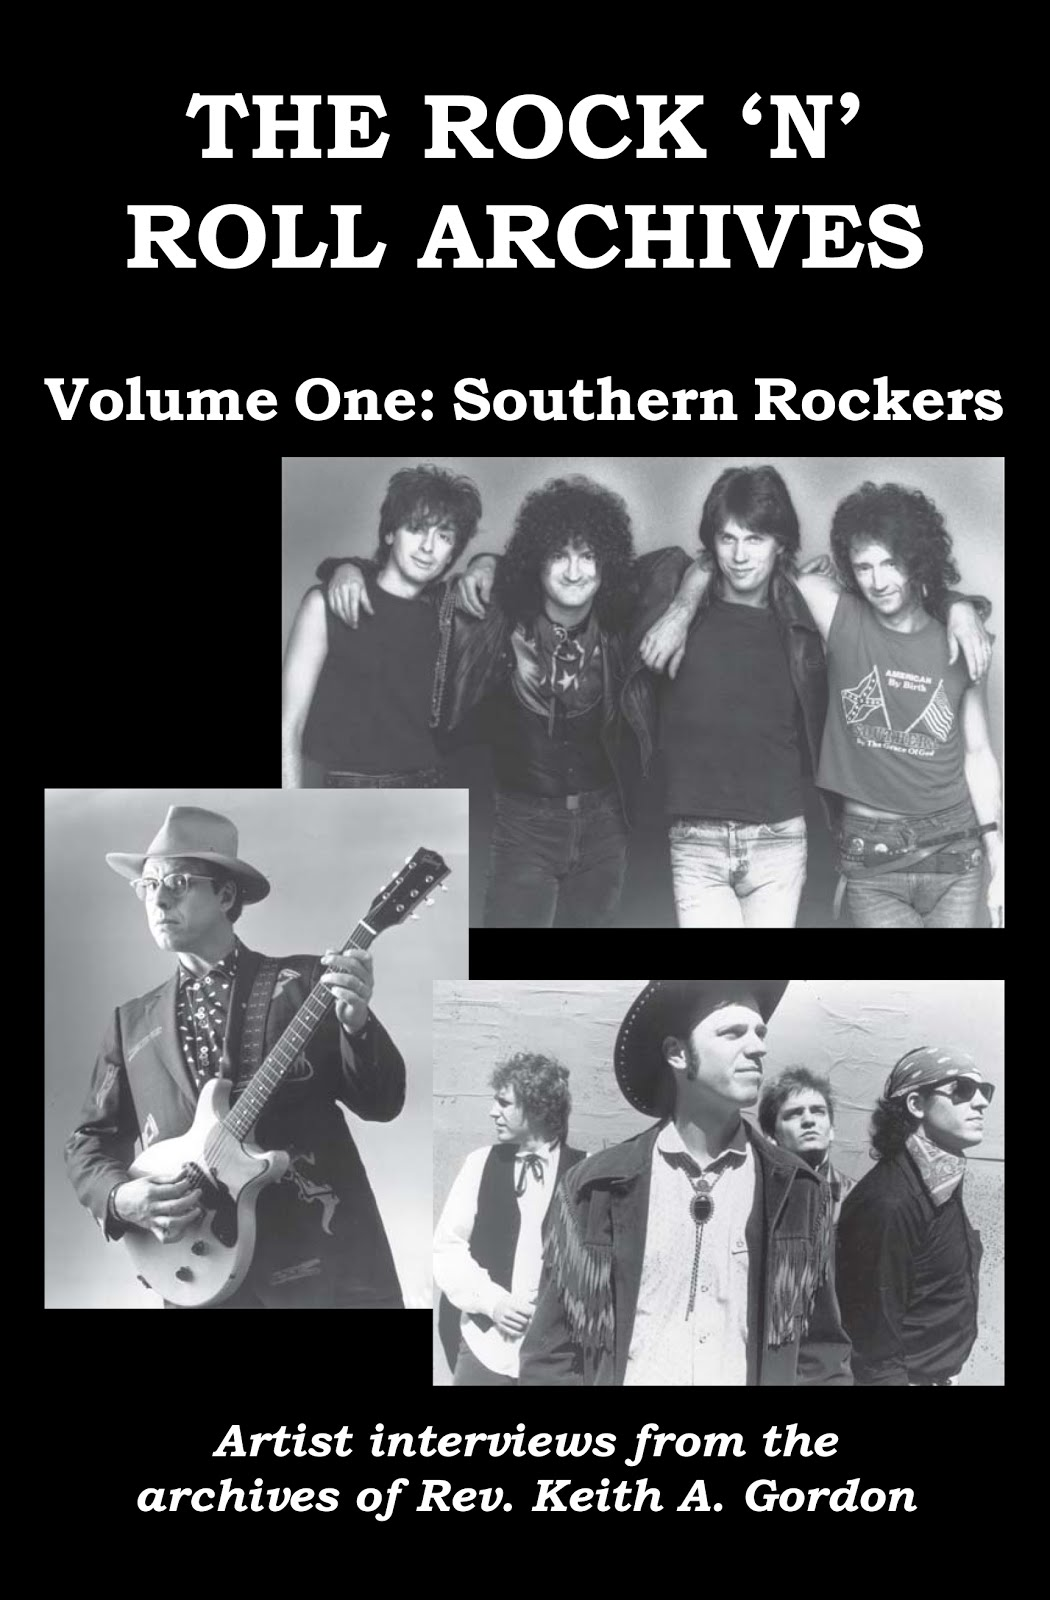 The Rock 'n' Roll Archives, Volume One